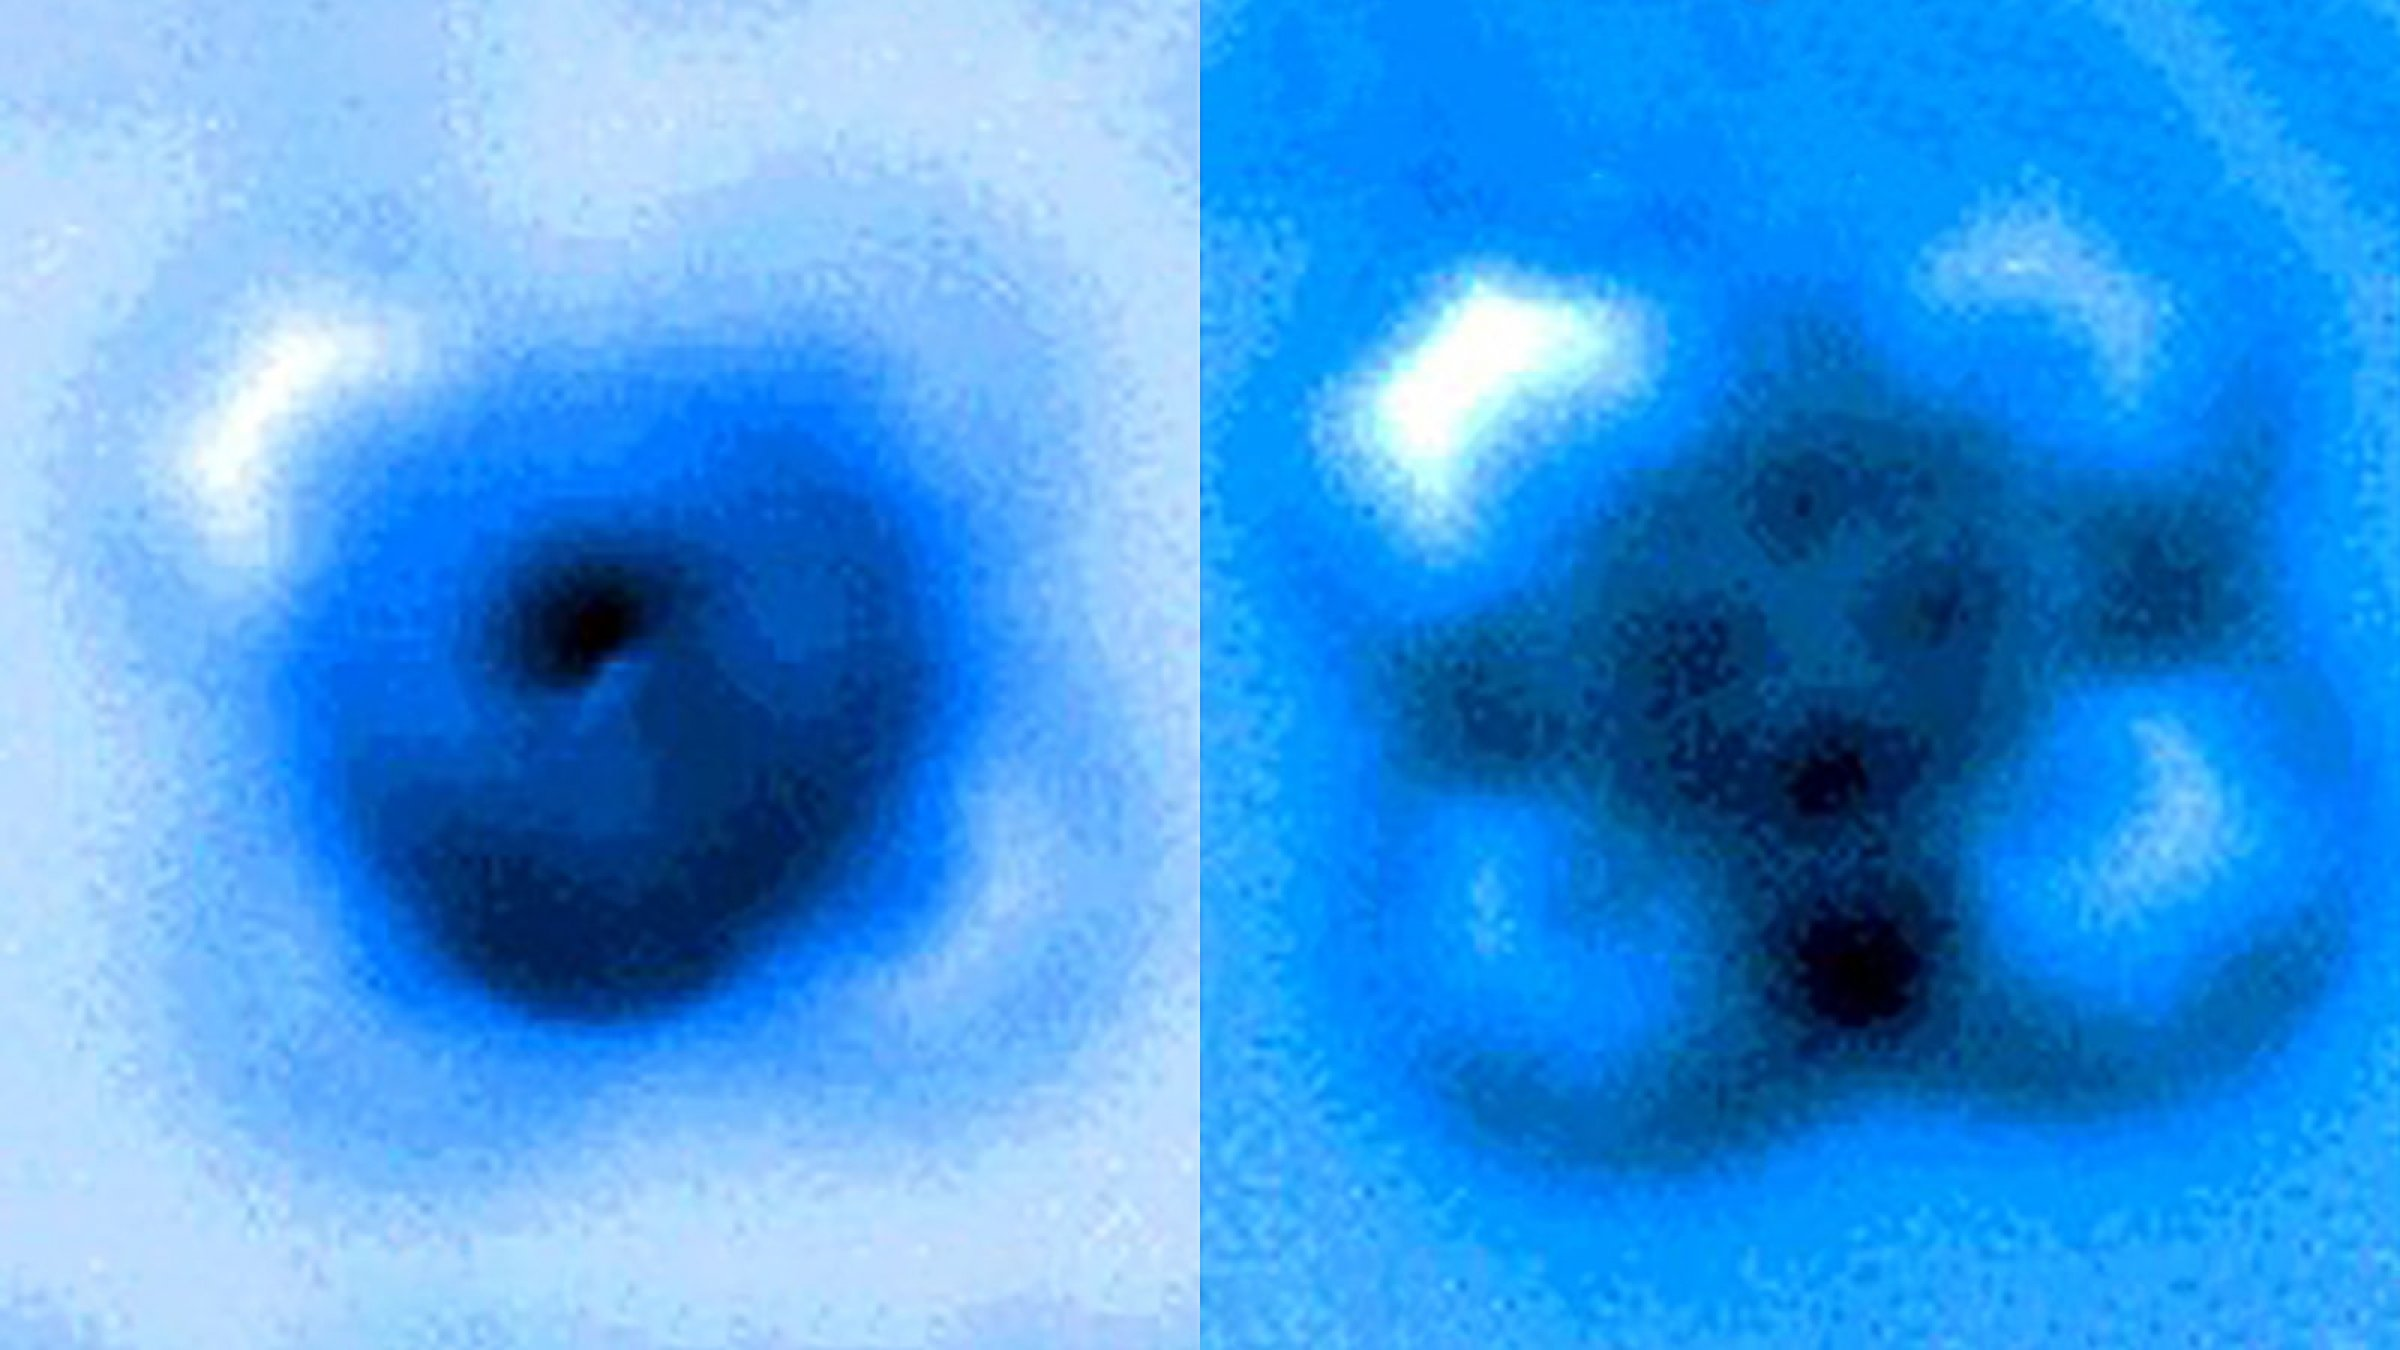 Researchers measured the mechanical forces applied to break a bond between carbon monoxide and iron phthalocyanine, which appears as a symmetrical cross in scanning probe microscope images taken before and after the bond rupture. (Pengcheng Chen et al.)